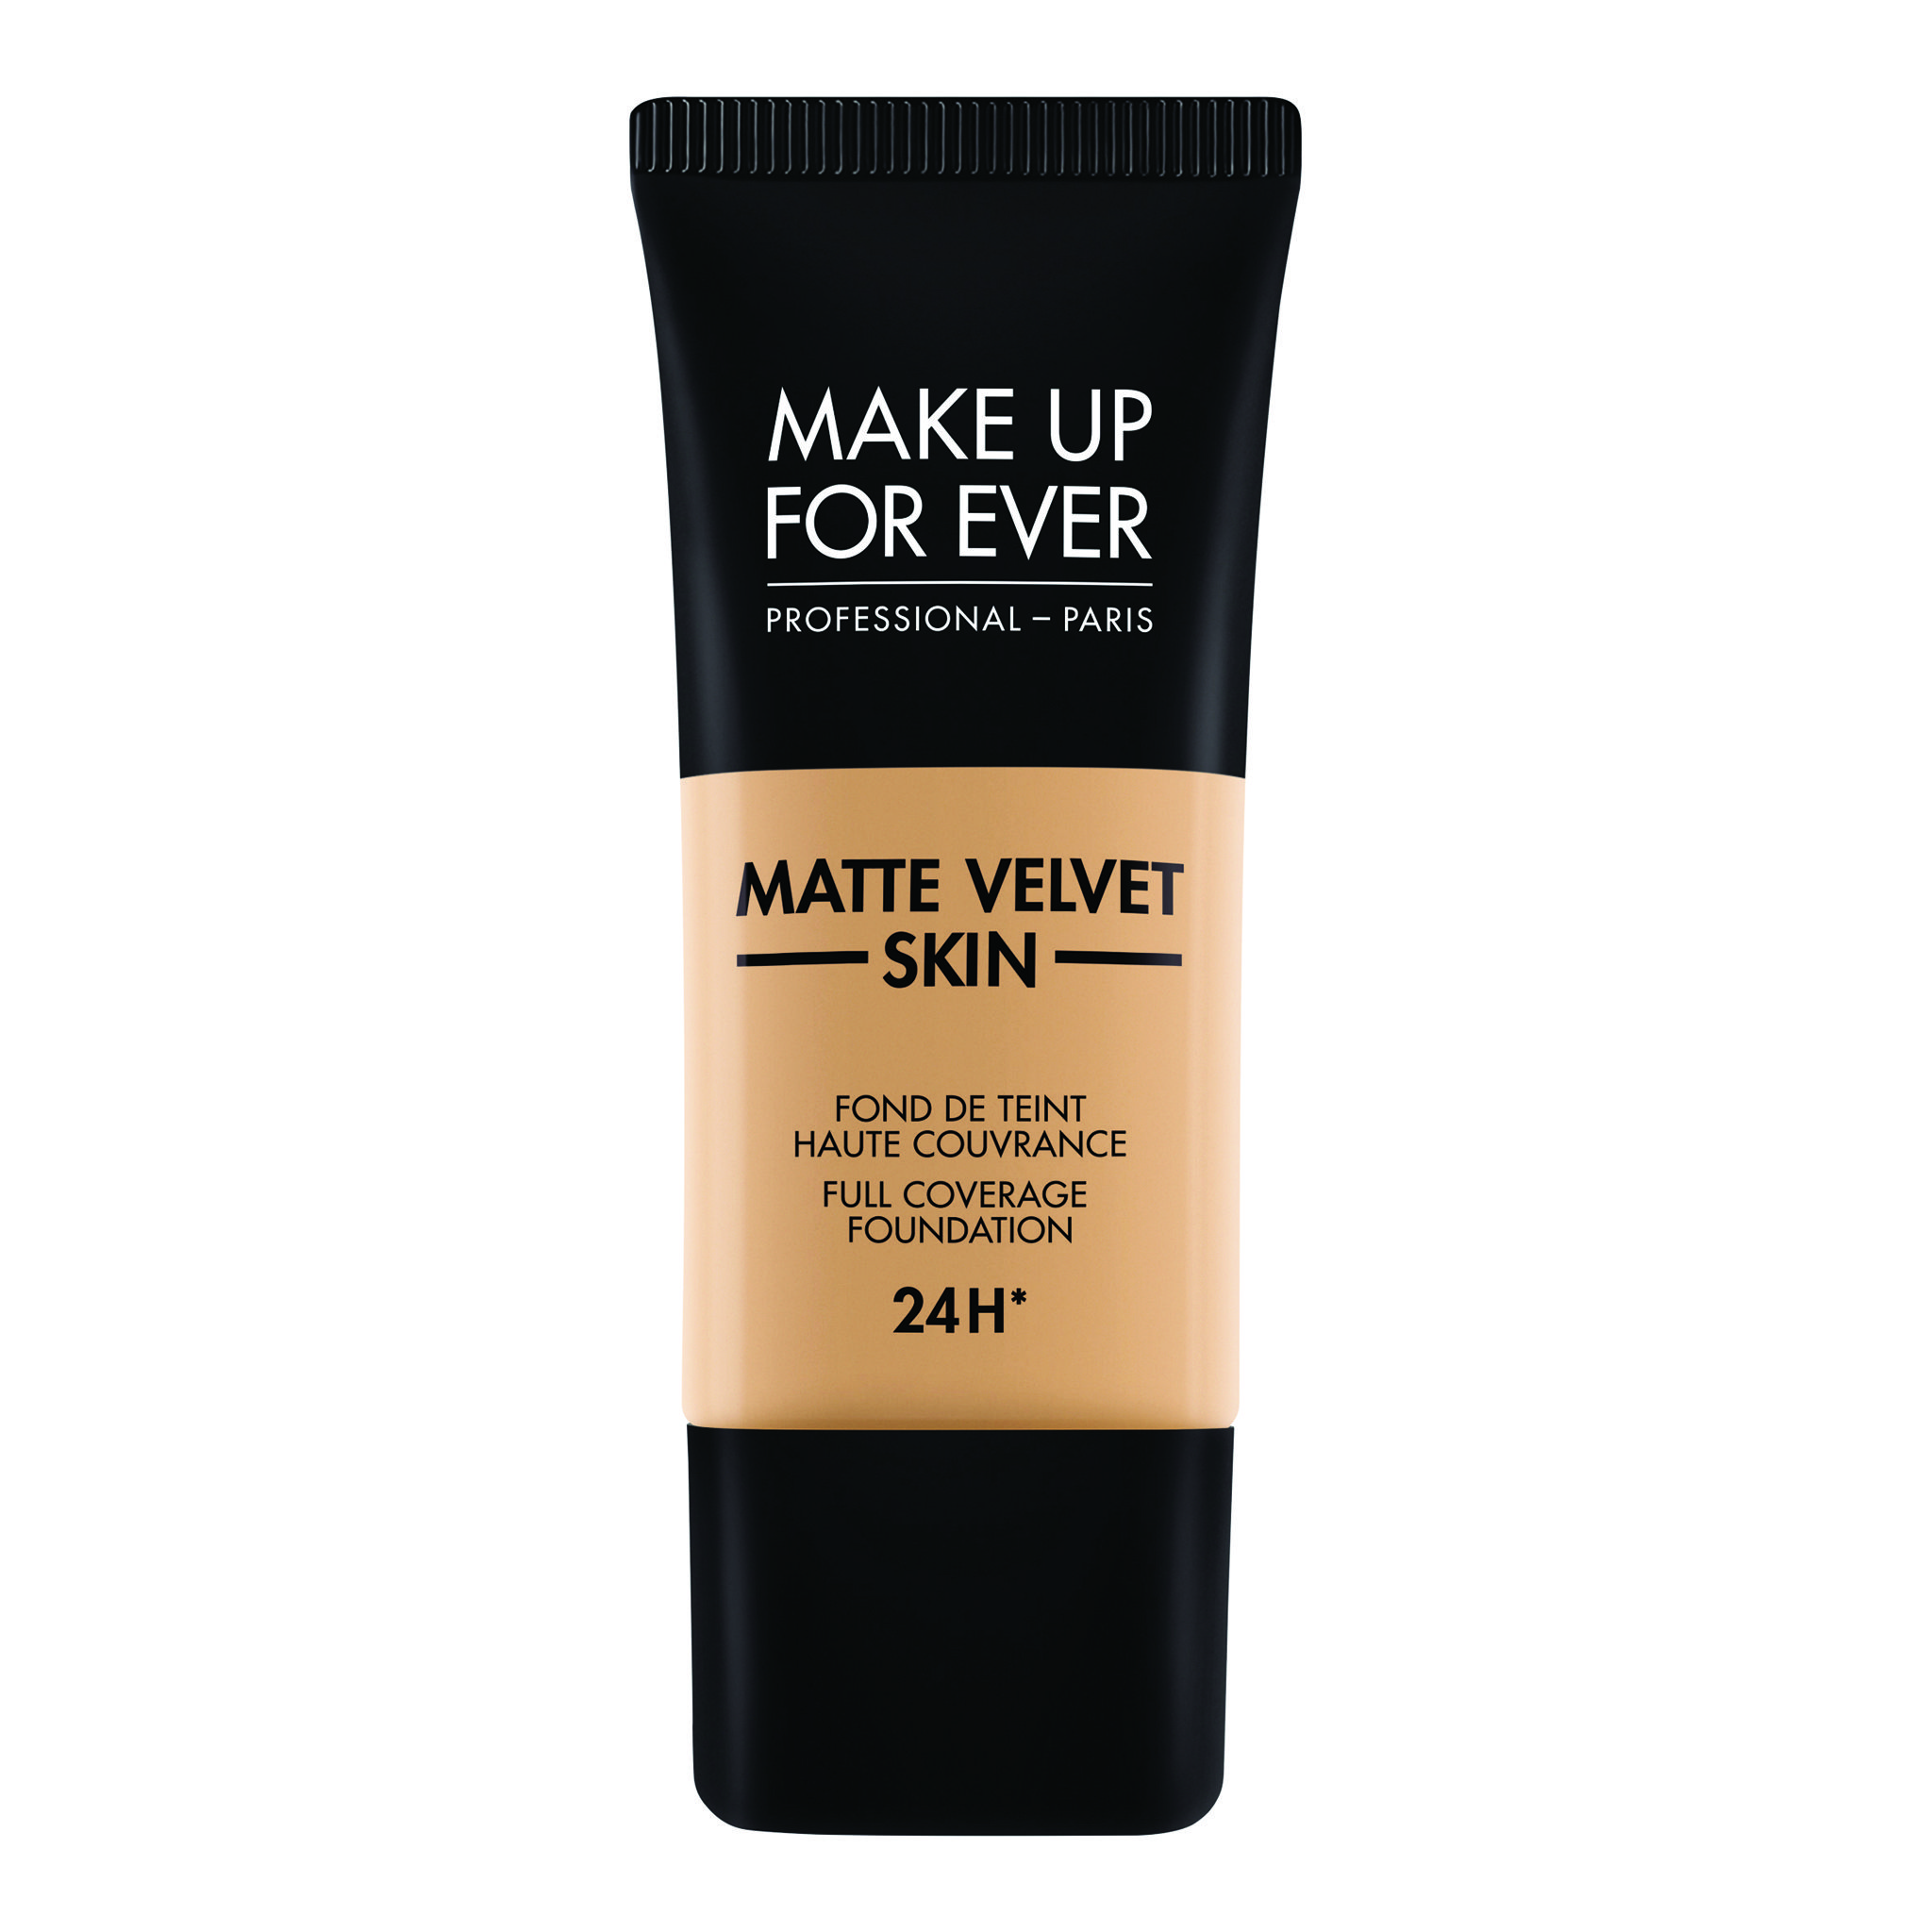 Breathable, fullcoverage foundation with a lifelike matte